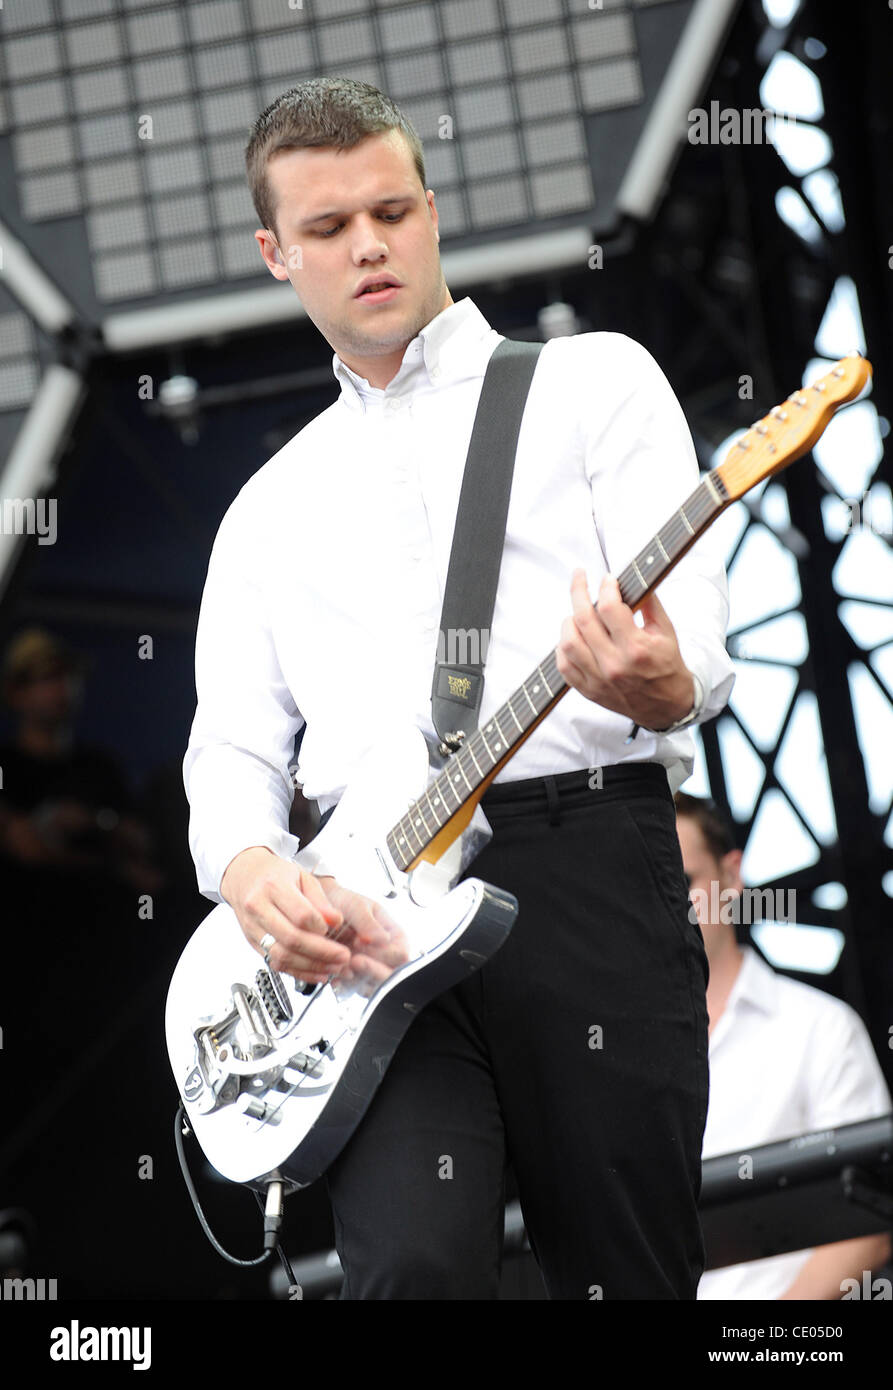 Aug 5, 2011 - Chicago, Illinois; USA - Singer / Guitarist HARRY McVEIGH of the band White Lies performs live as - Stock Image